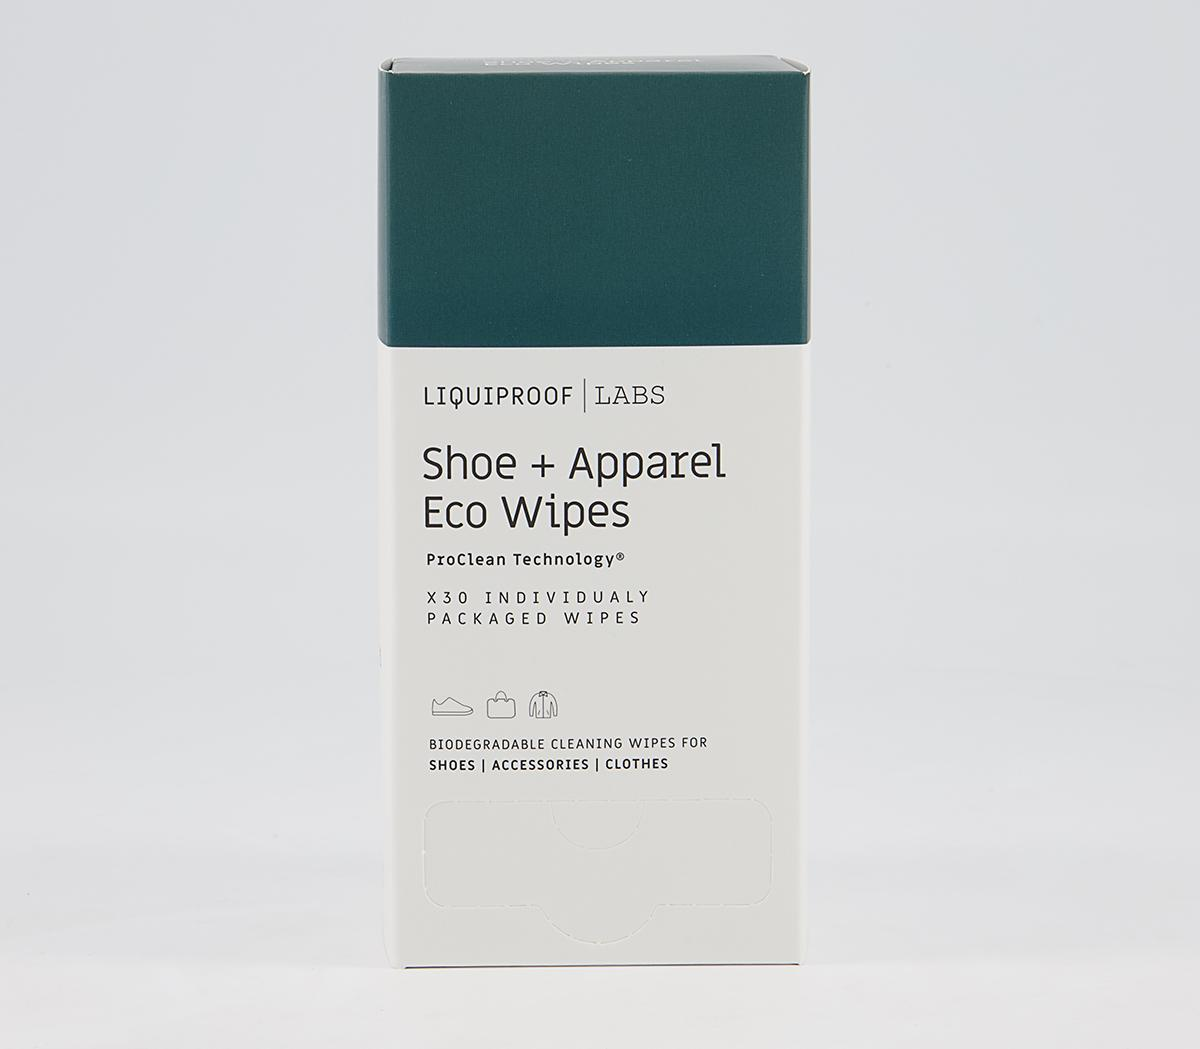 Liquiproof Sneaker Cleaning Wipes